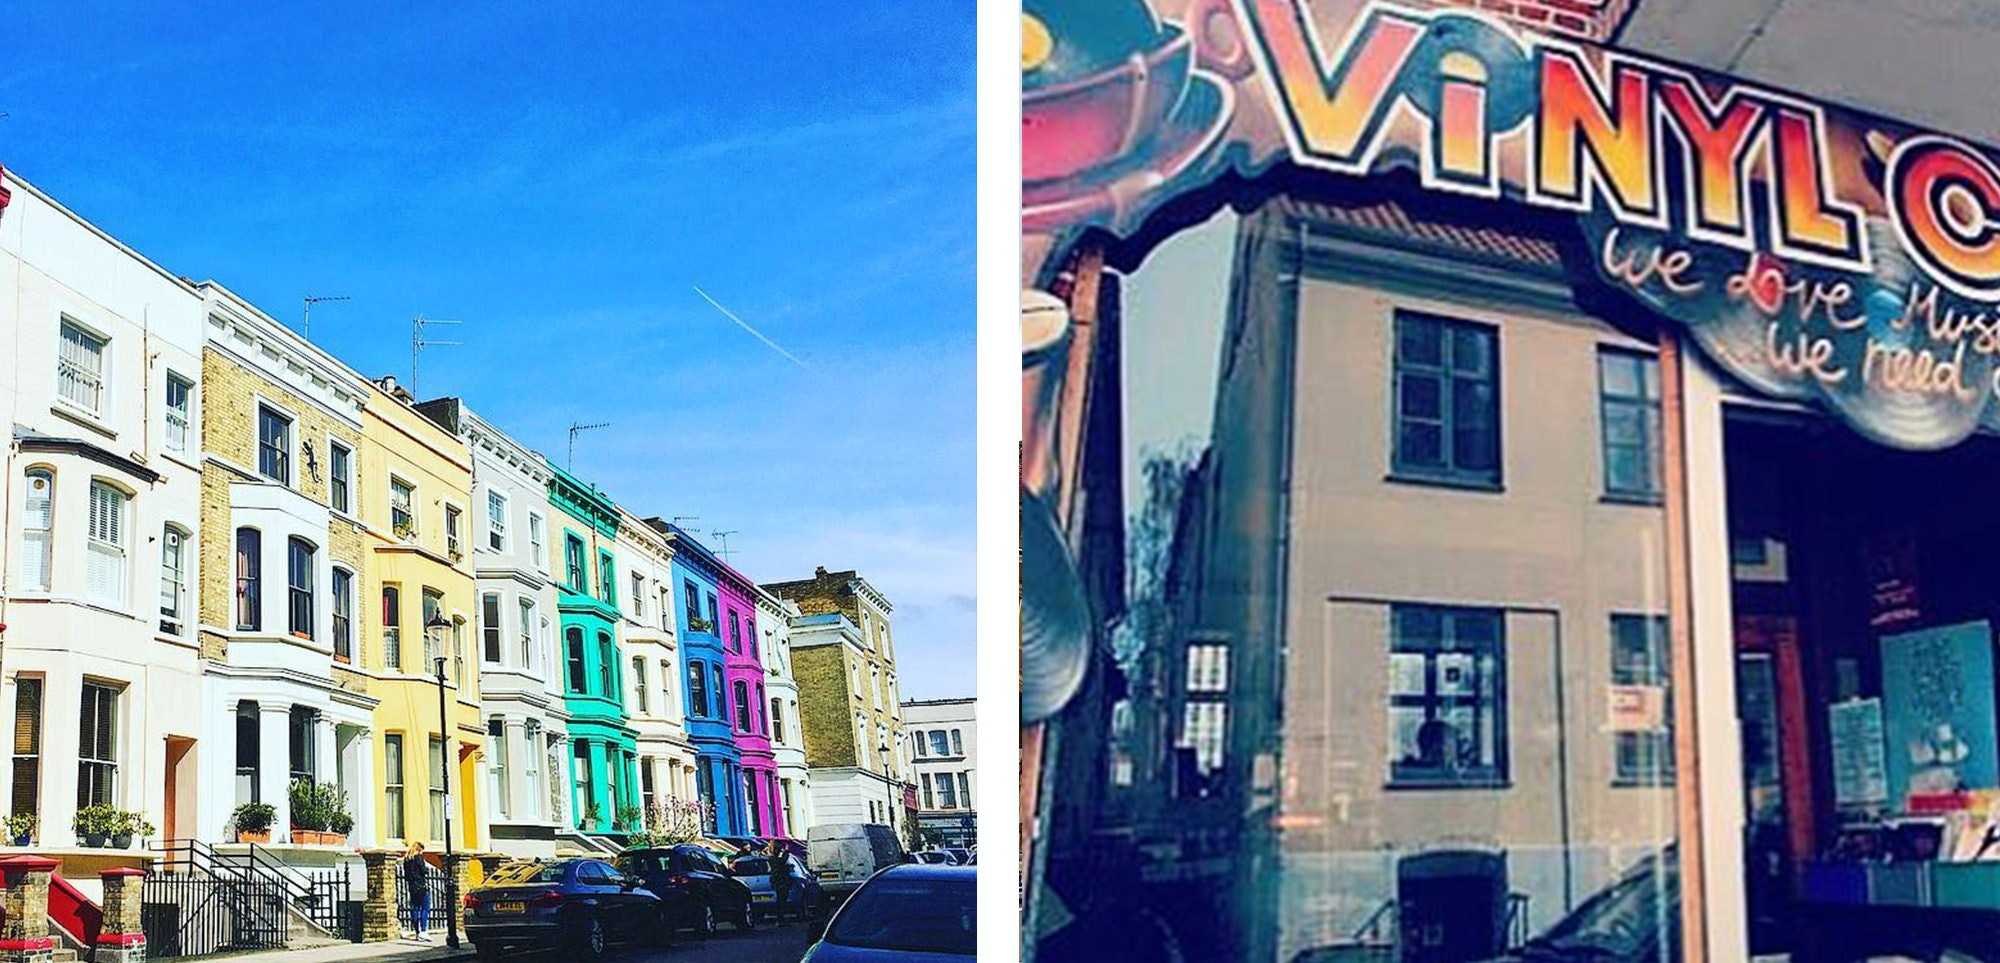 Portobello road Market is one of the best areas to go to if you want to do some vintage or antiques shopping.